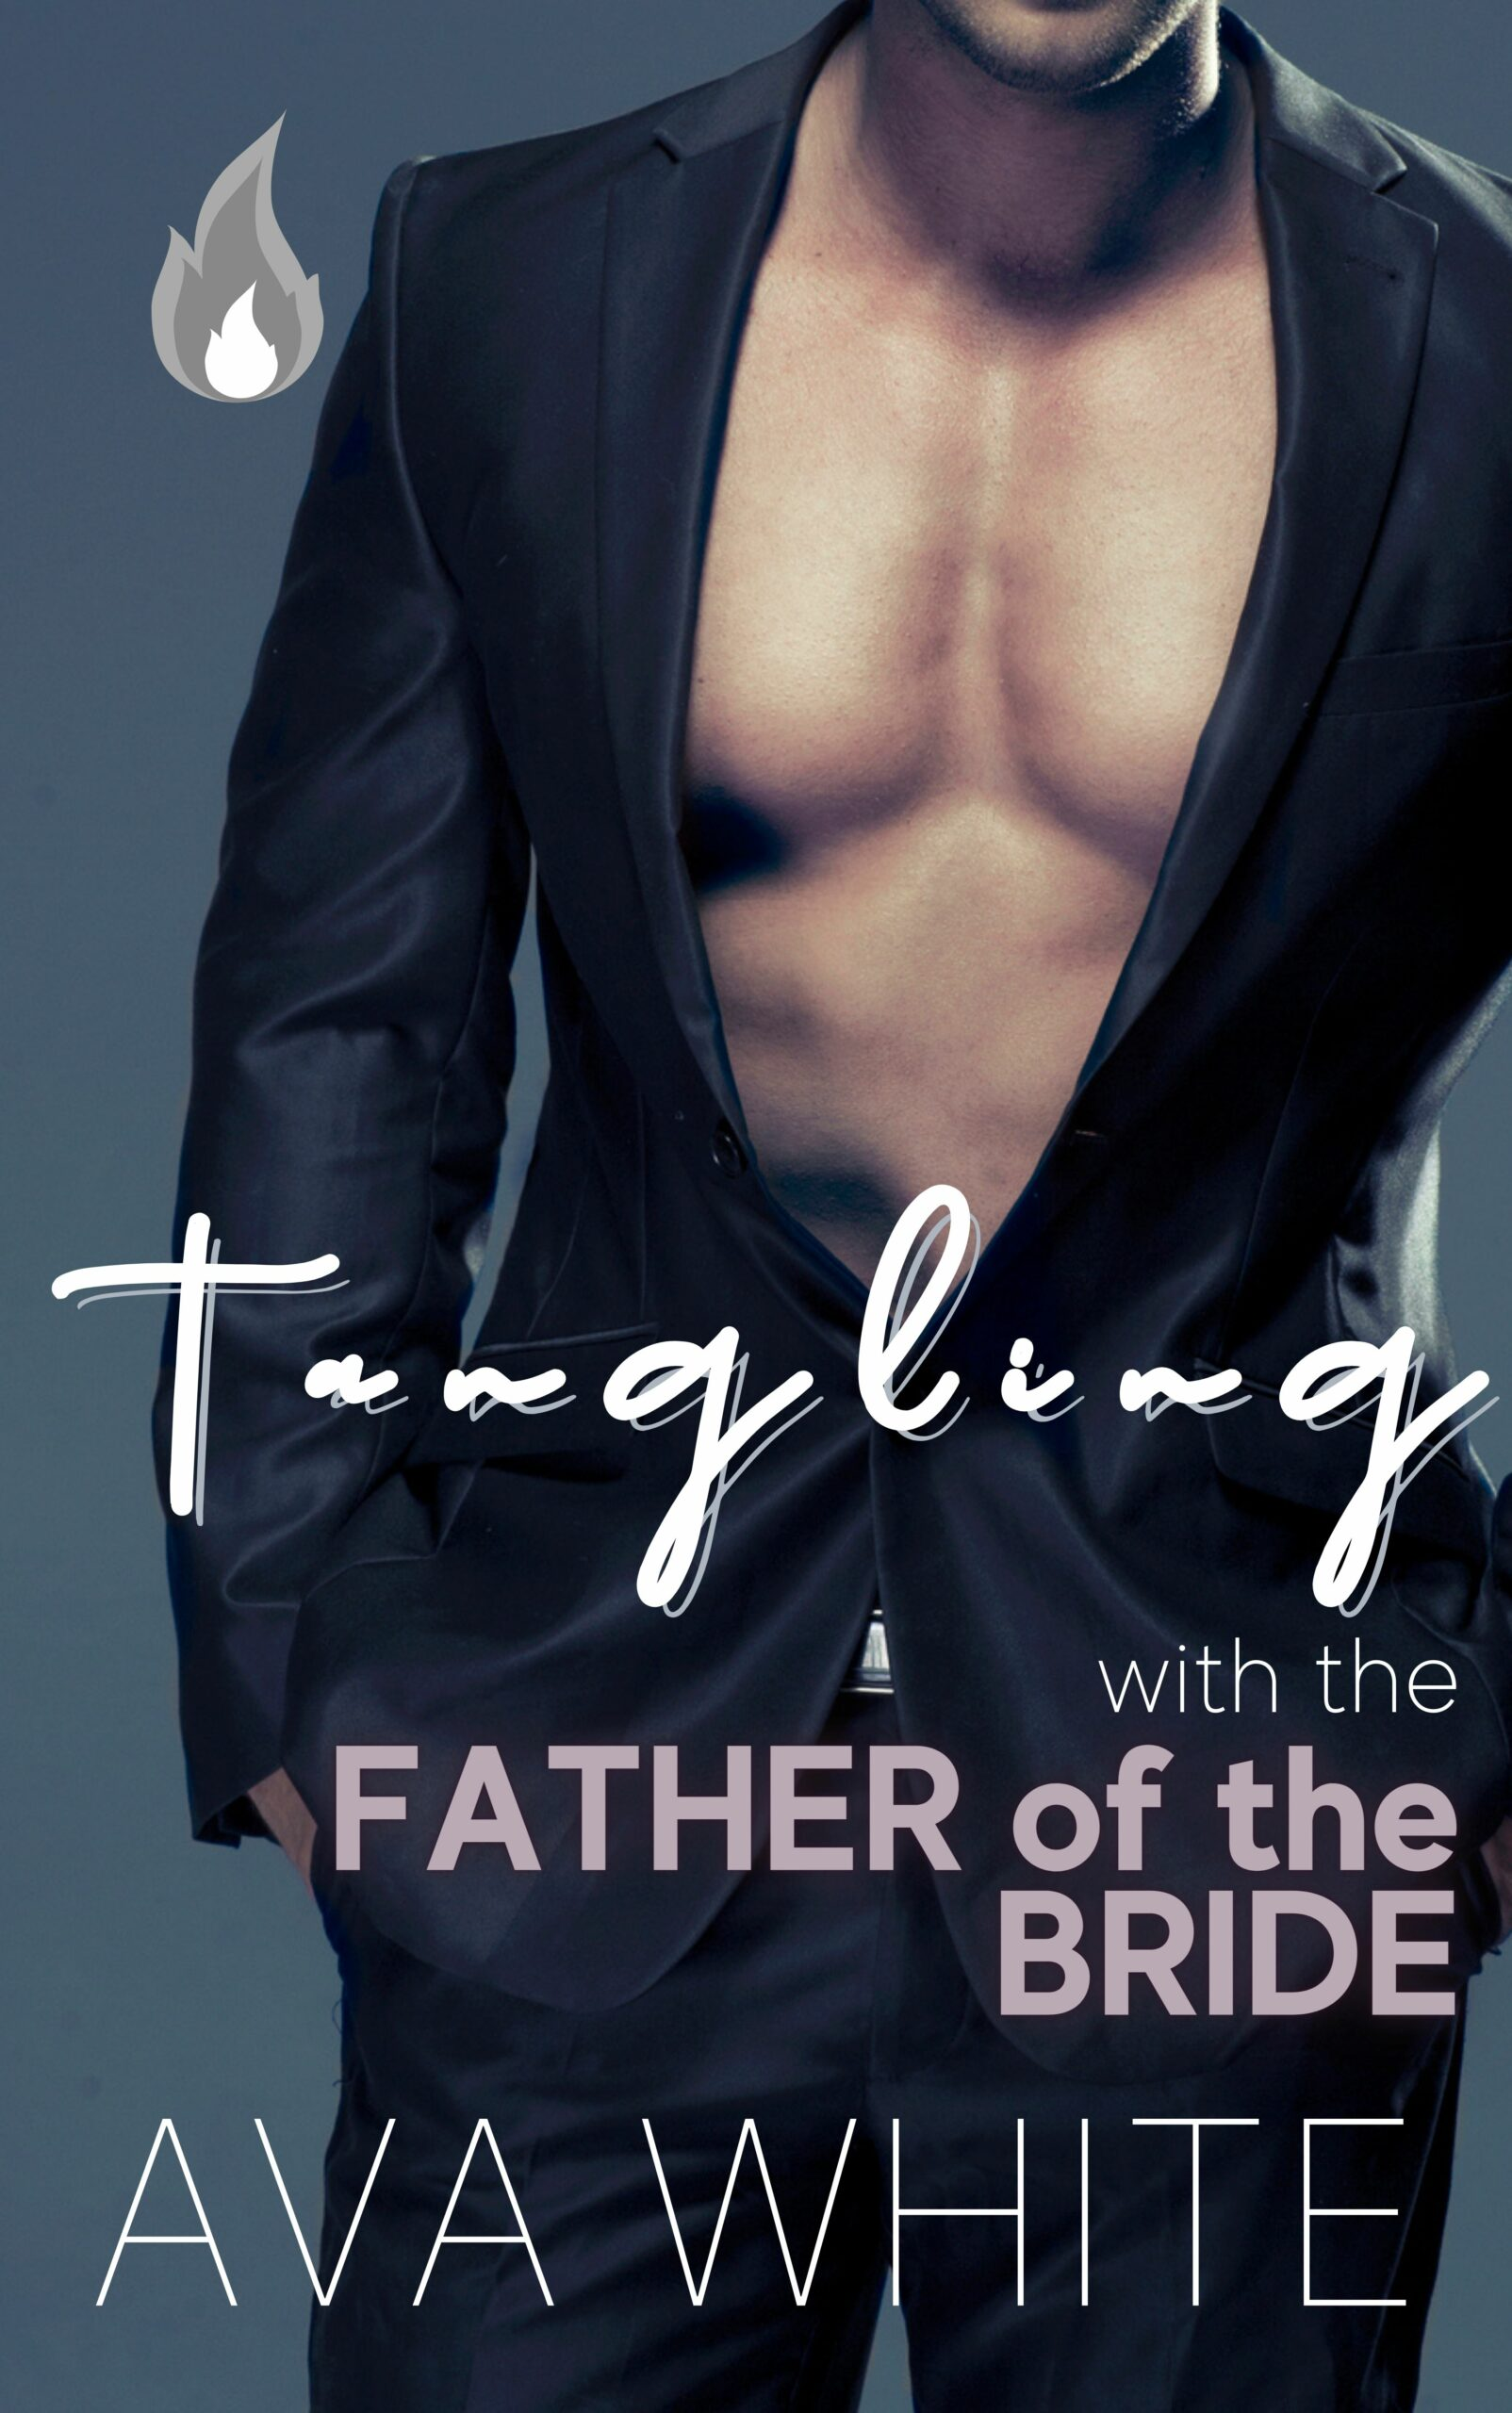 Tangling-with-the-Father-of-the-Bride.jpg